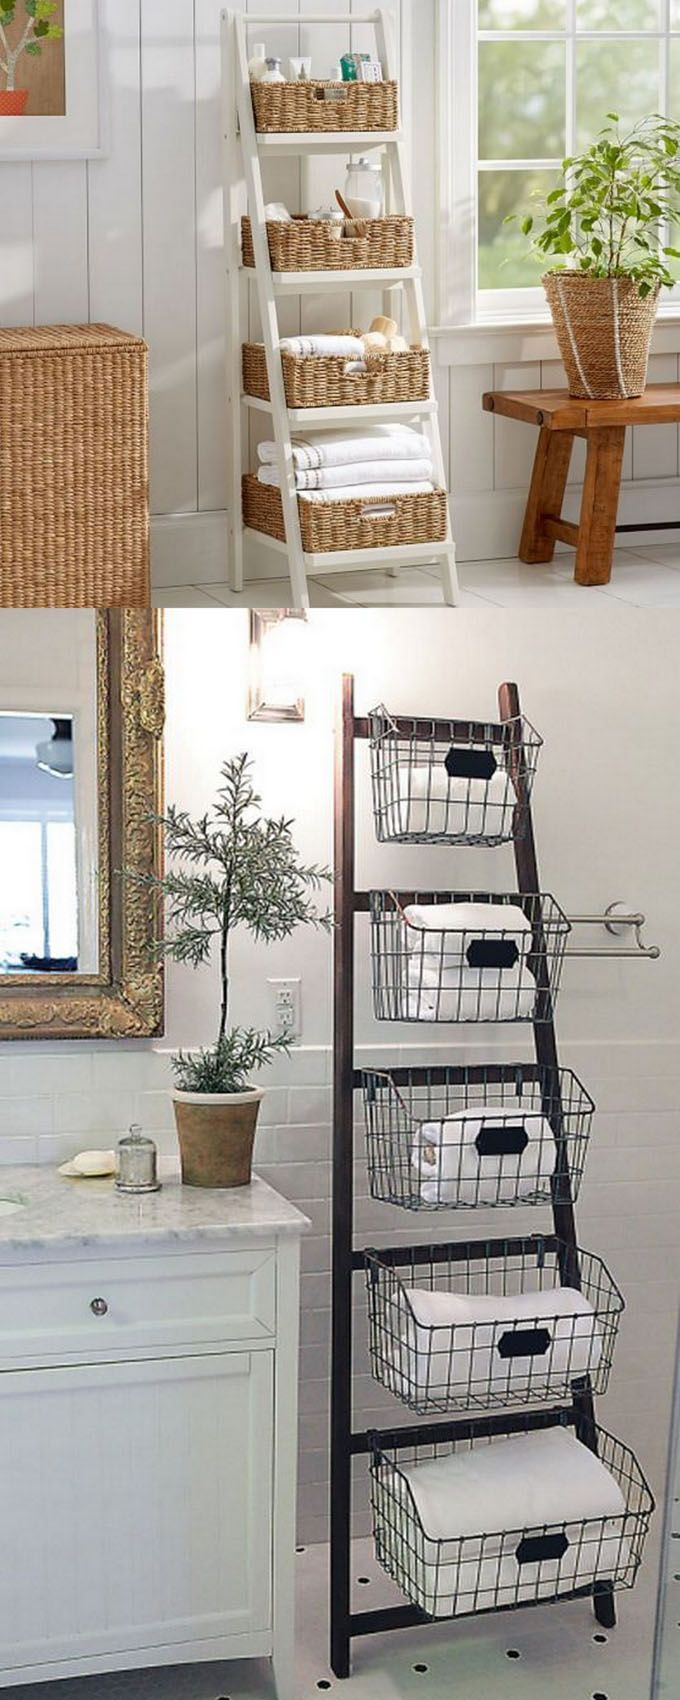 18 Inspiring Ladder Hacks For Every Room